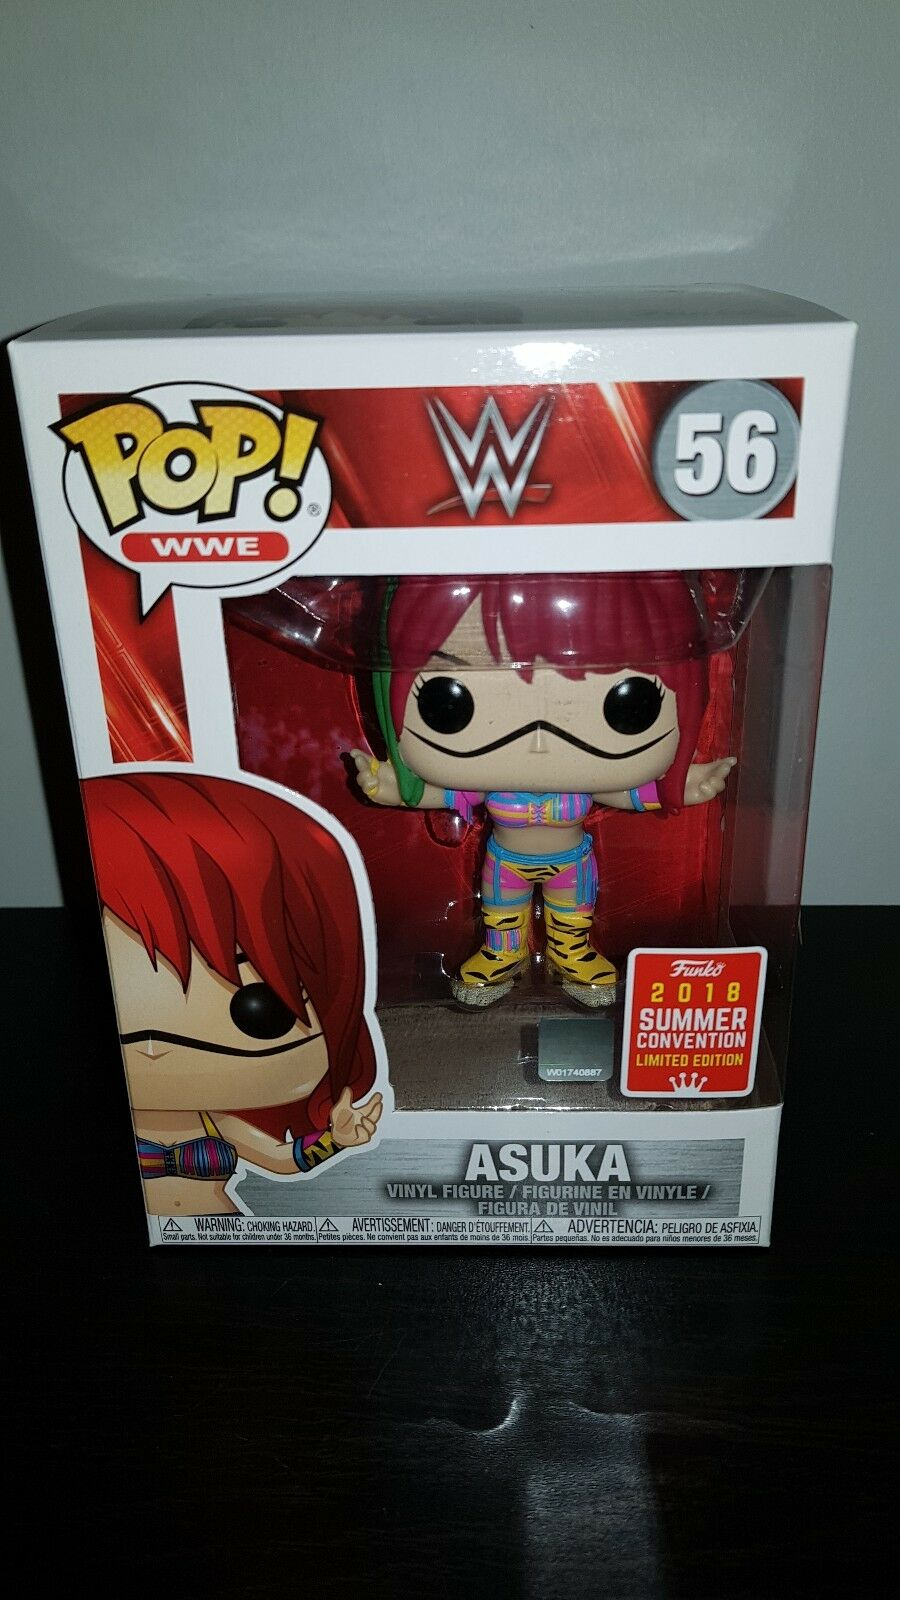 WWE Asuka Funko Pop 2018 SDCC Summer Convention